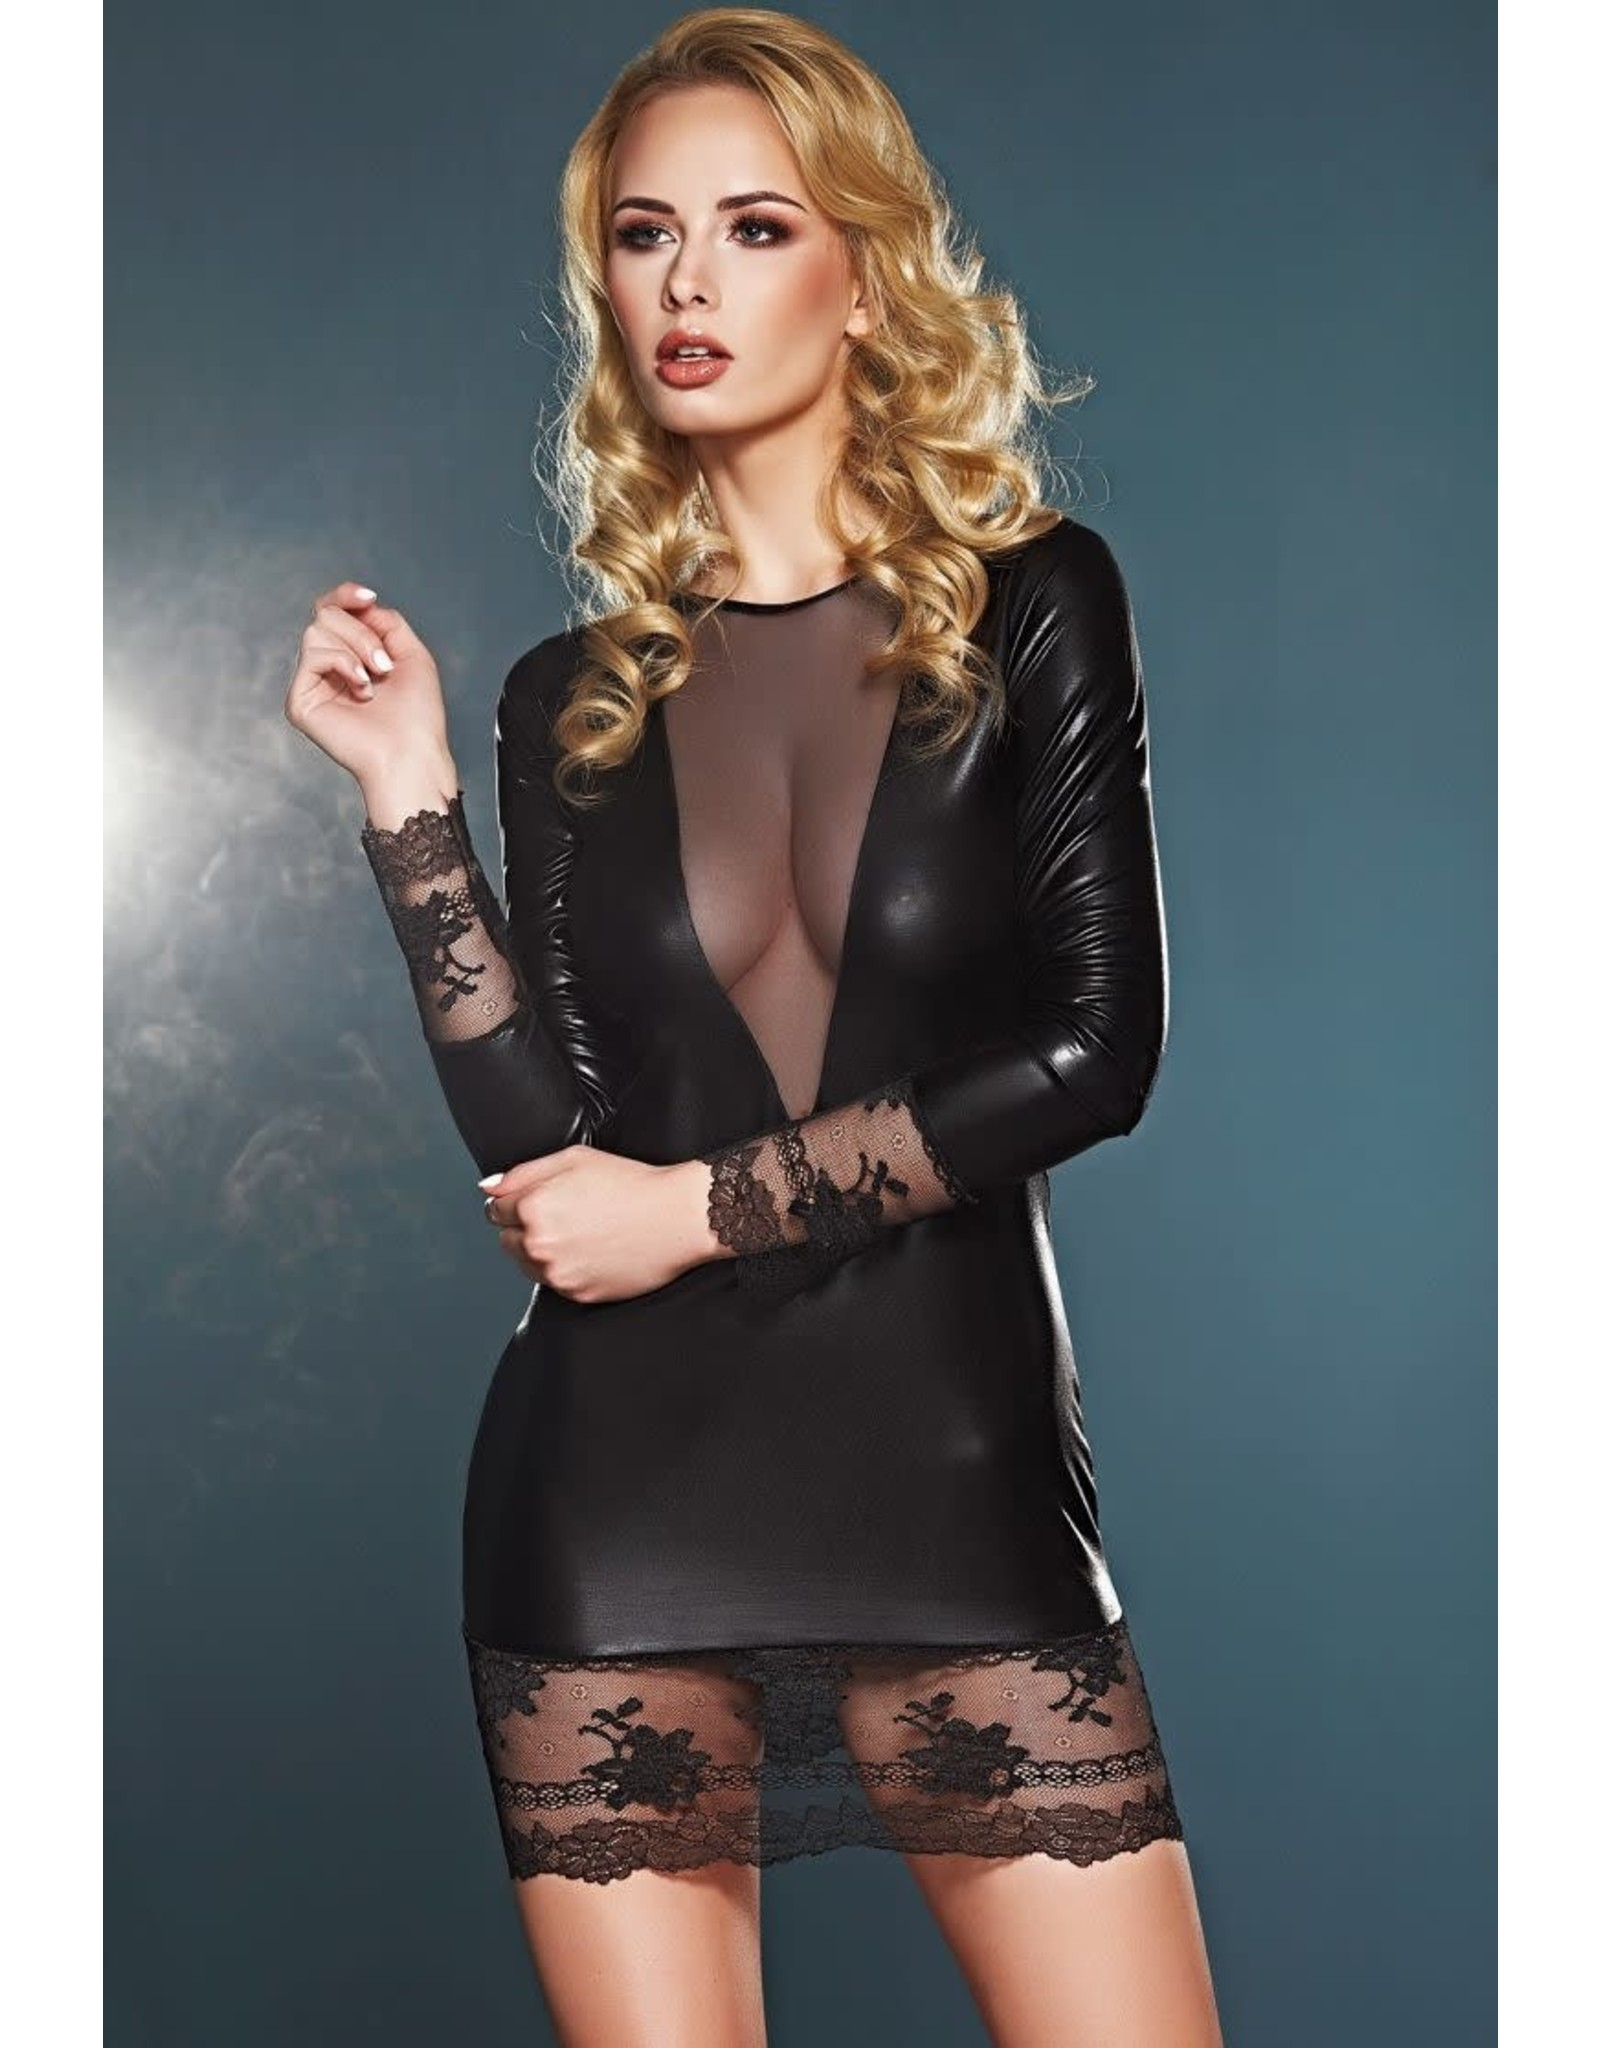 7 HEAVEN 7 HEAVEN - ELEGANT LONG-SLEEVE WET-LOOK DRESS WITH LACE AND TULLE DETAILS - XL - BLACK